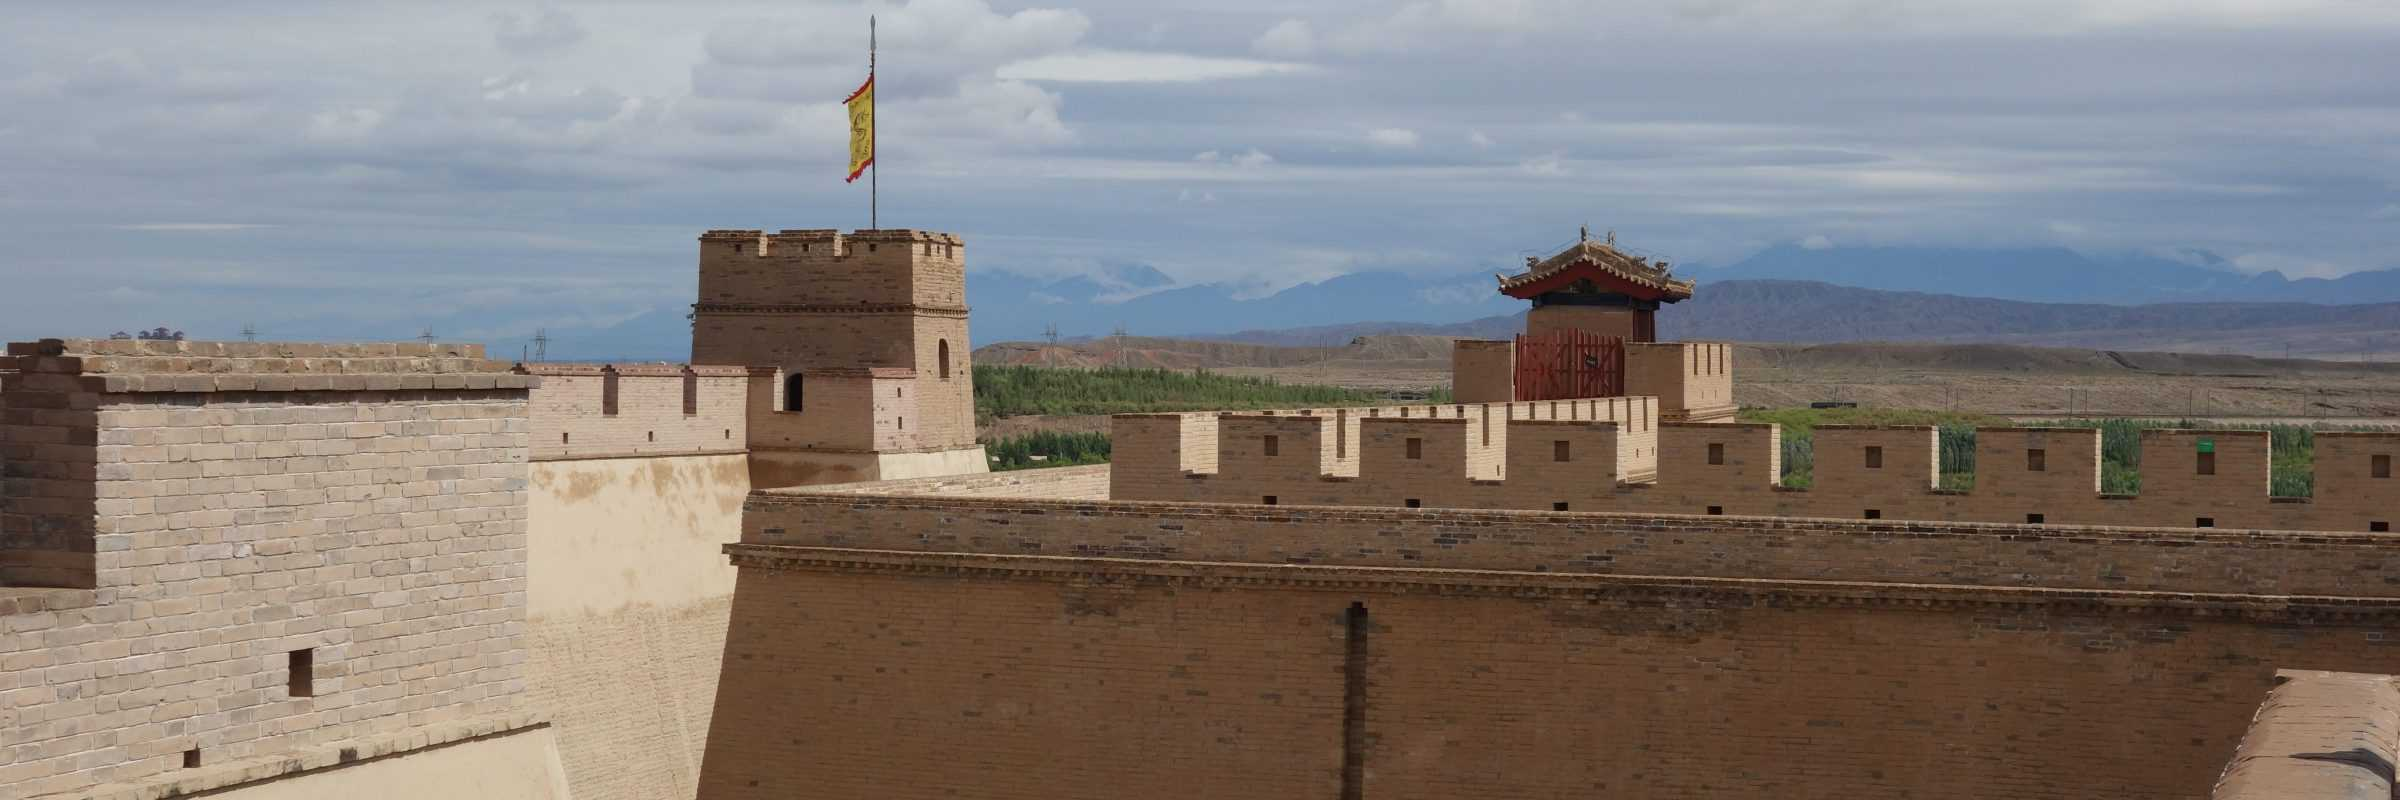 Jiayuguan Fort, China